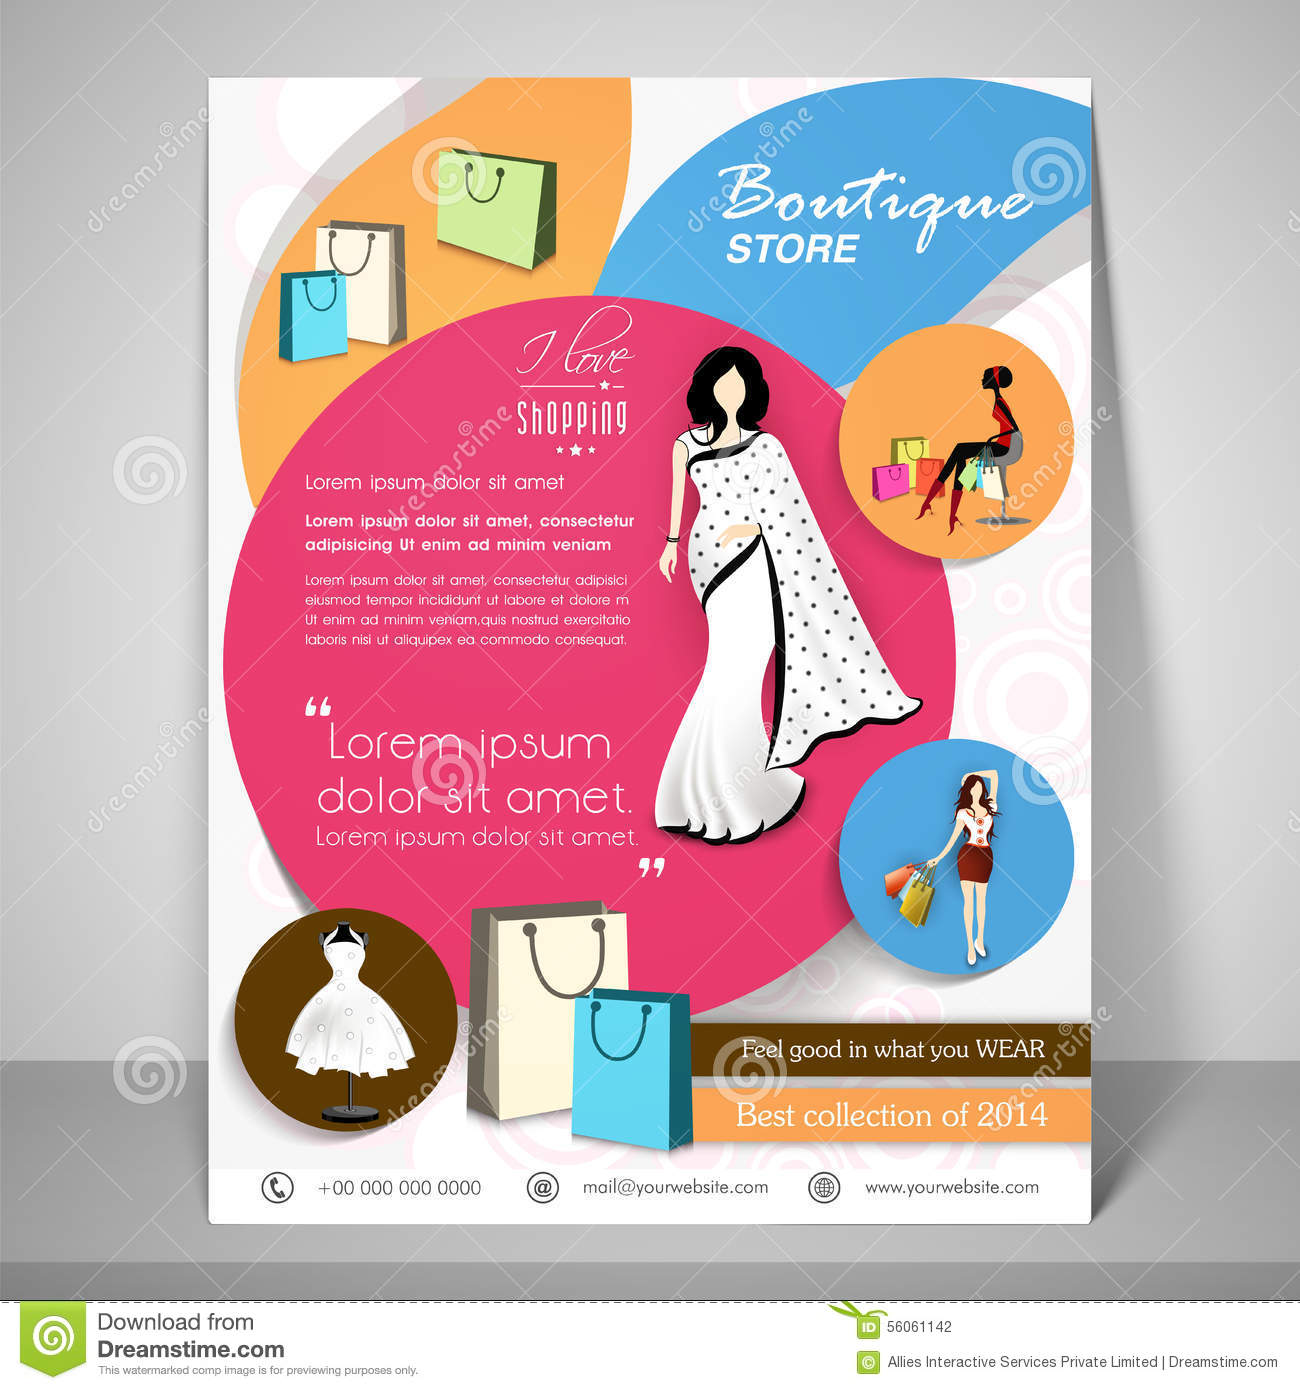 Boutique Store Template, Banner Or Flyer Design  Stock Illustration